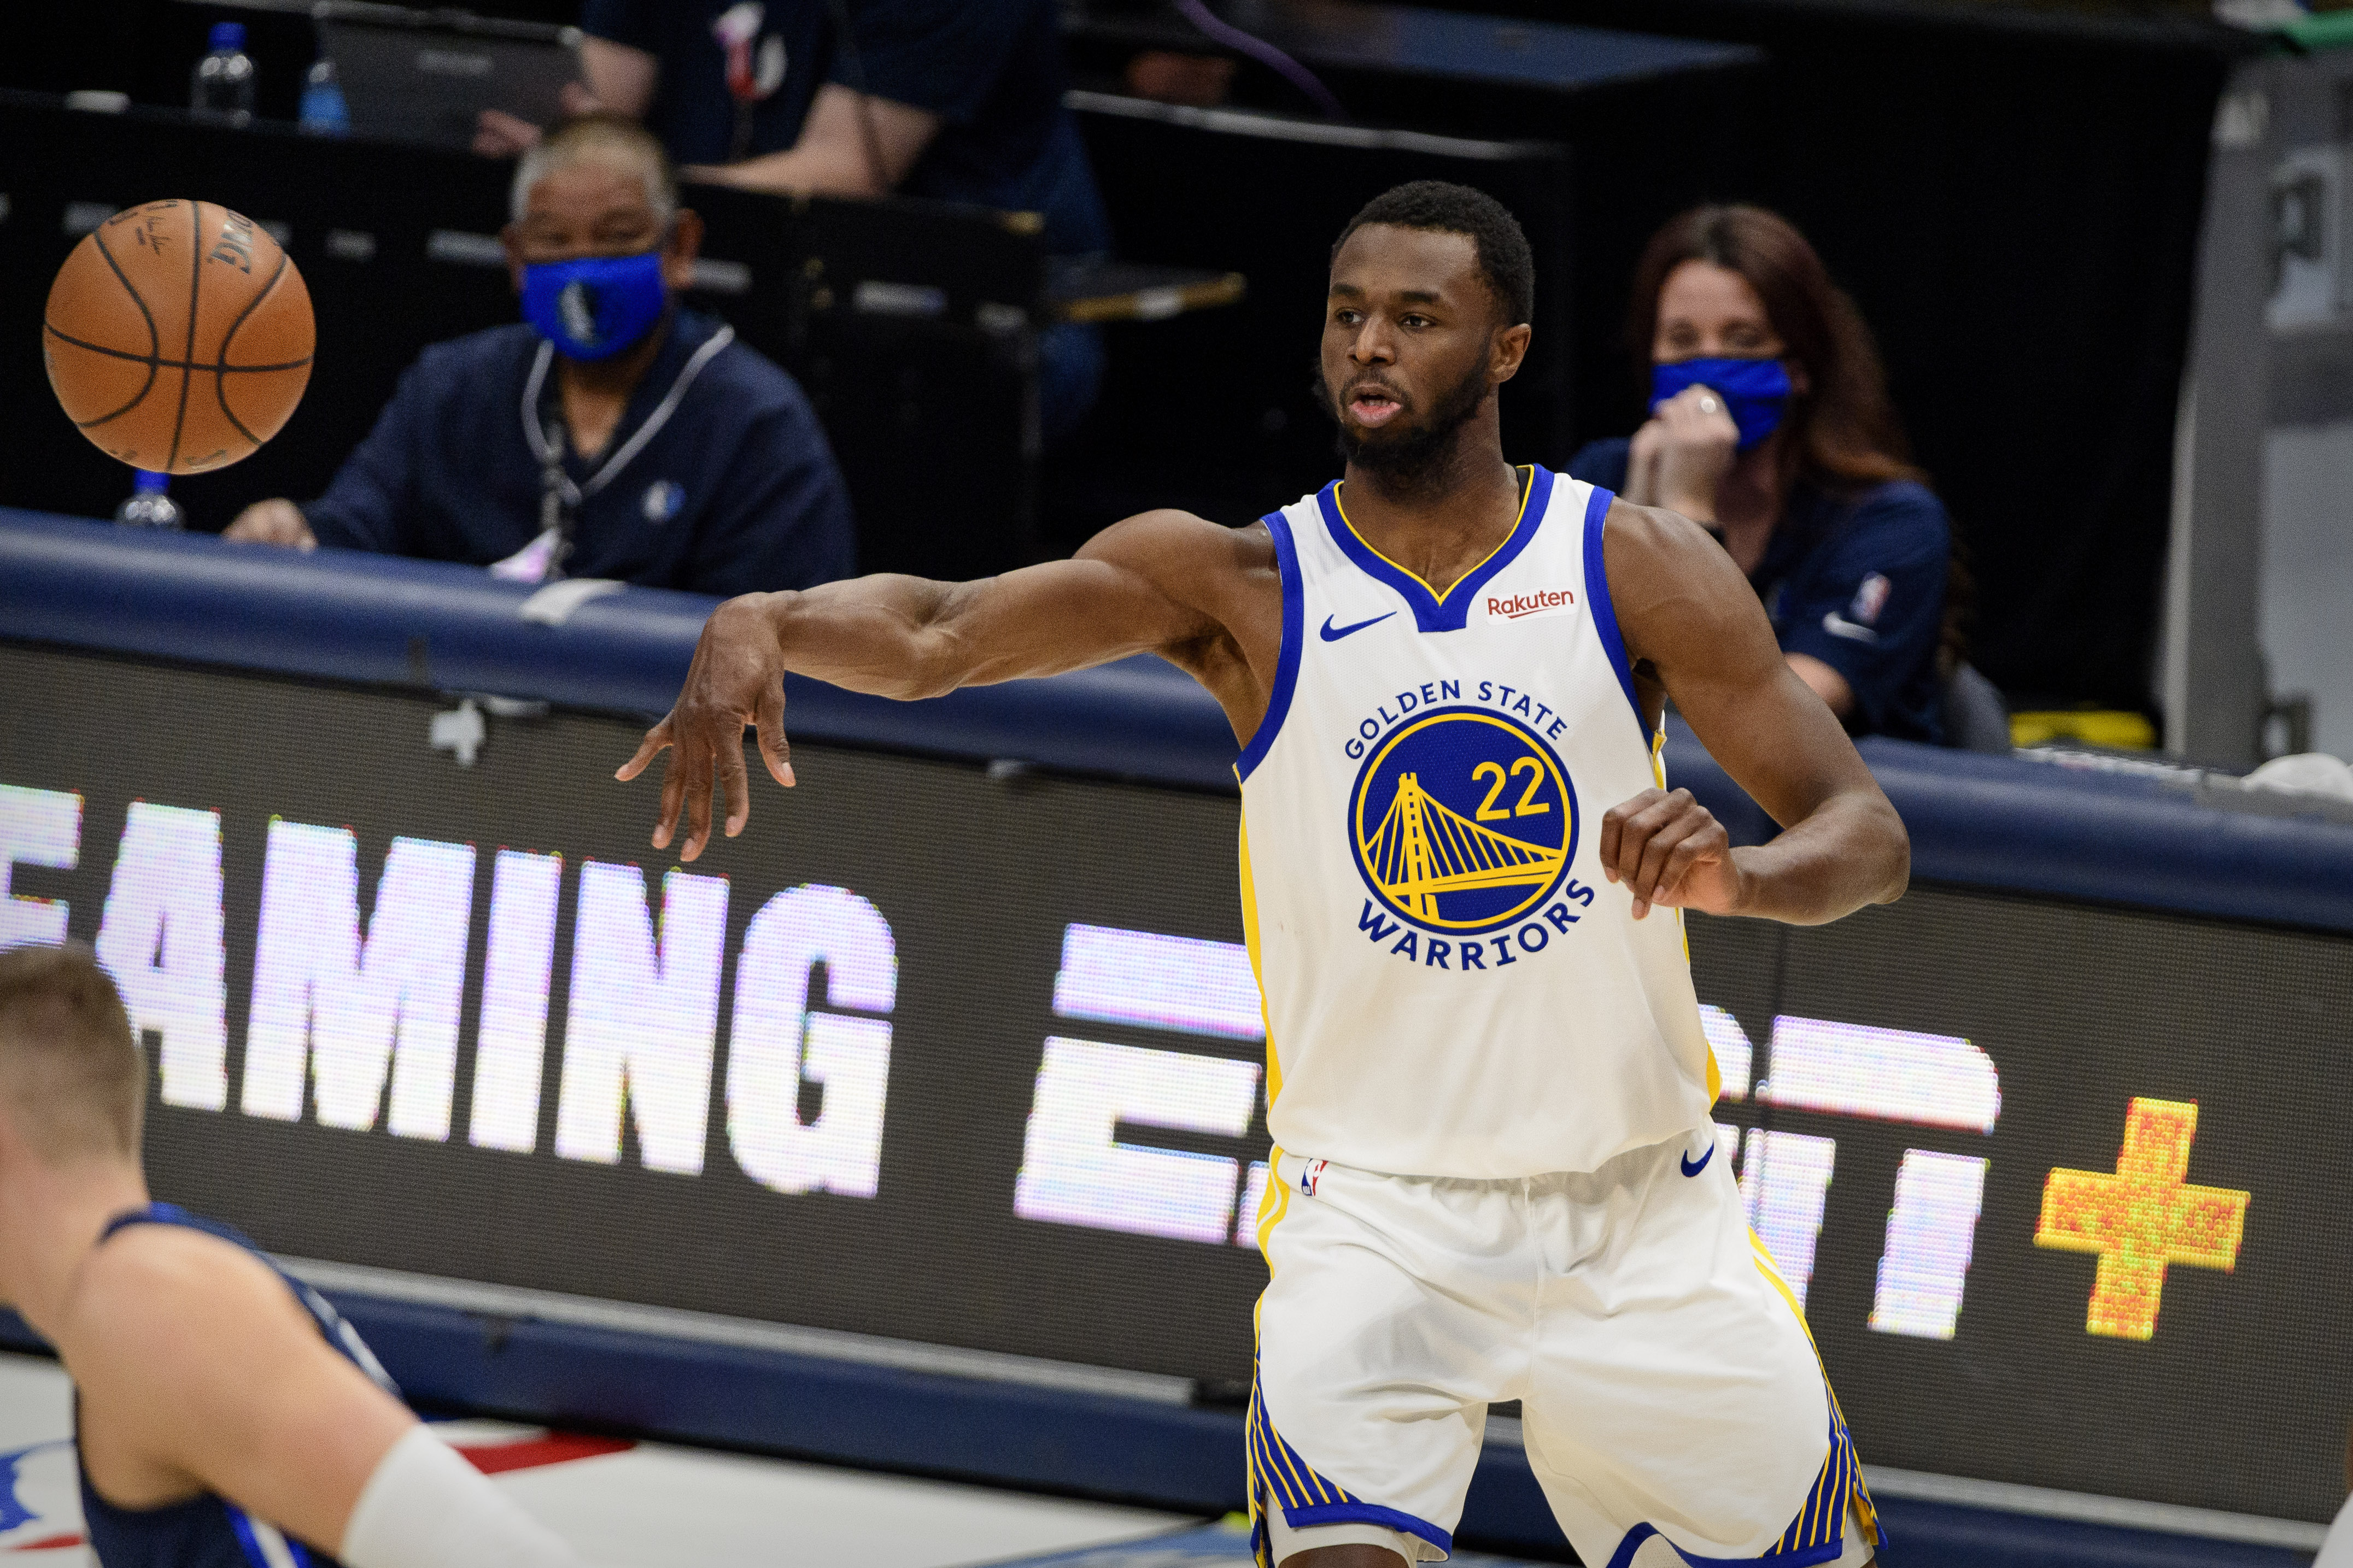 Feb 6, 2021; Dallas, Texas, USA; Golden State Warriors forward Andrew Wiggins (22) in action during the game between the Dallas Mavericks and the Golden State Warriors at the American Airlines Center. Mandatory Credit: Jerome Miron-USA TODAY Sports